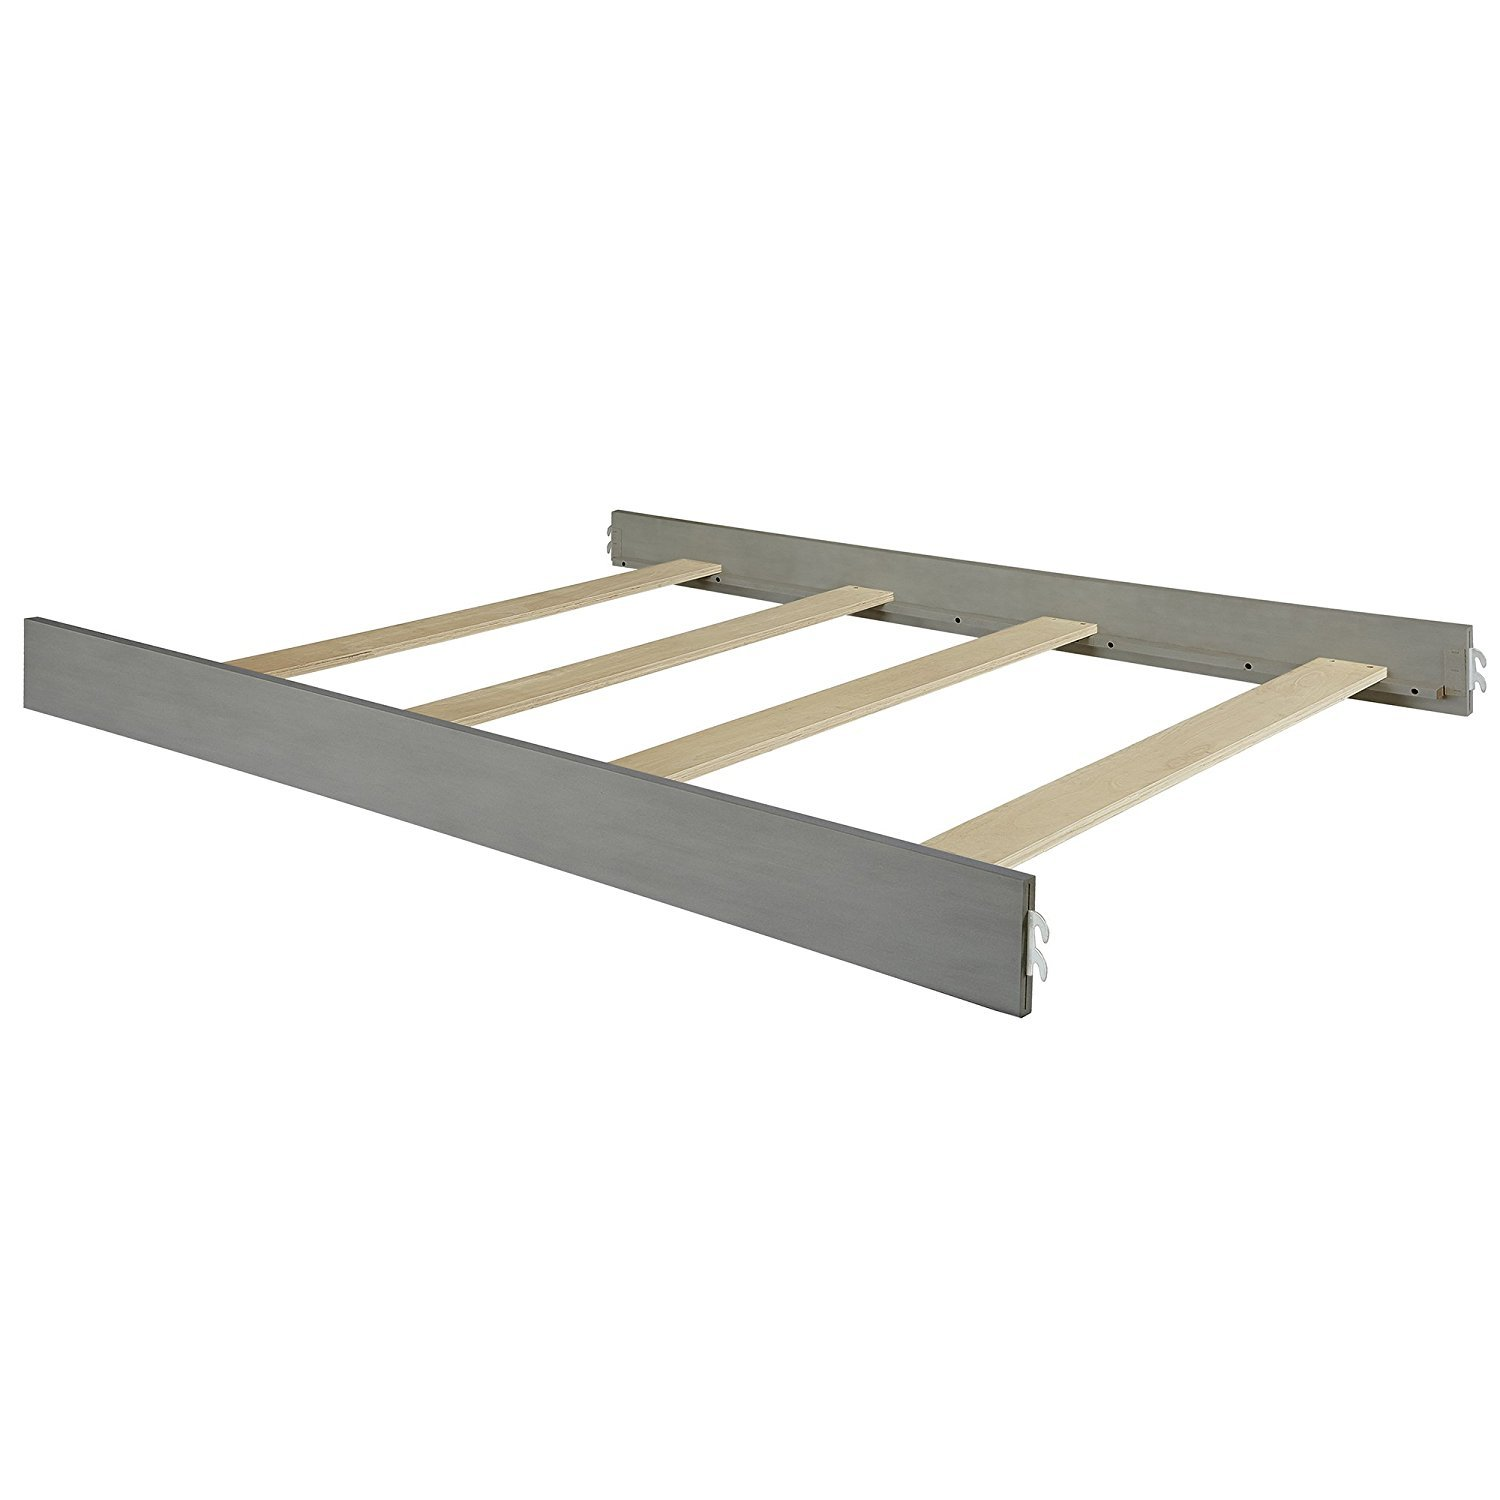 Full Size Conversion Kit Bed Rails for Oxford Baby Richmond Crib - Brushed Gray 17088530